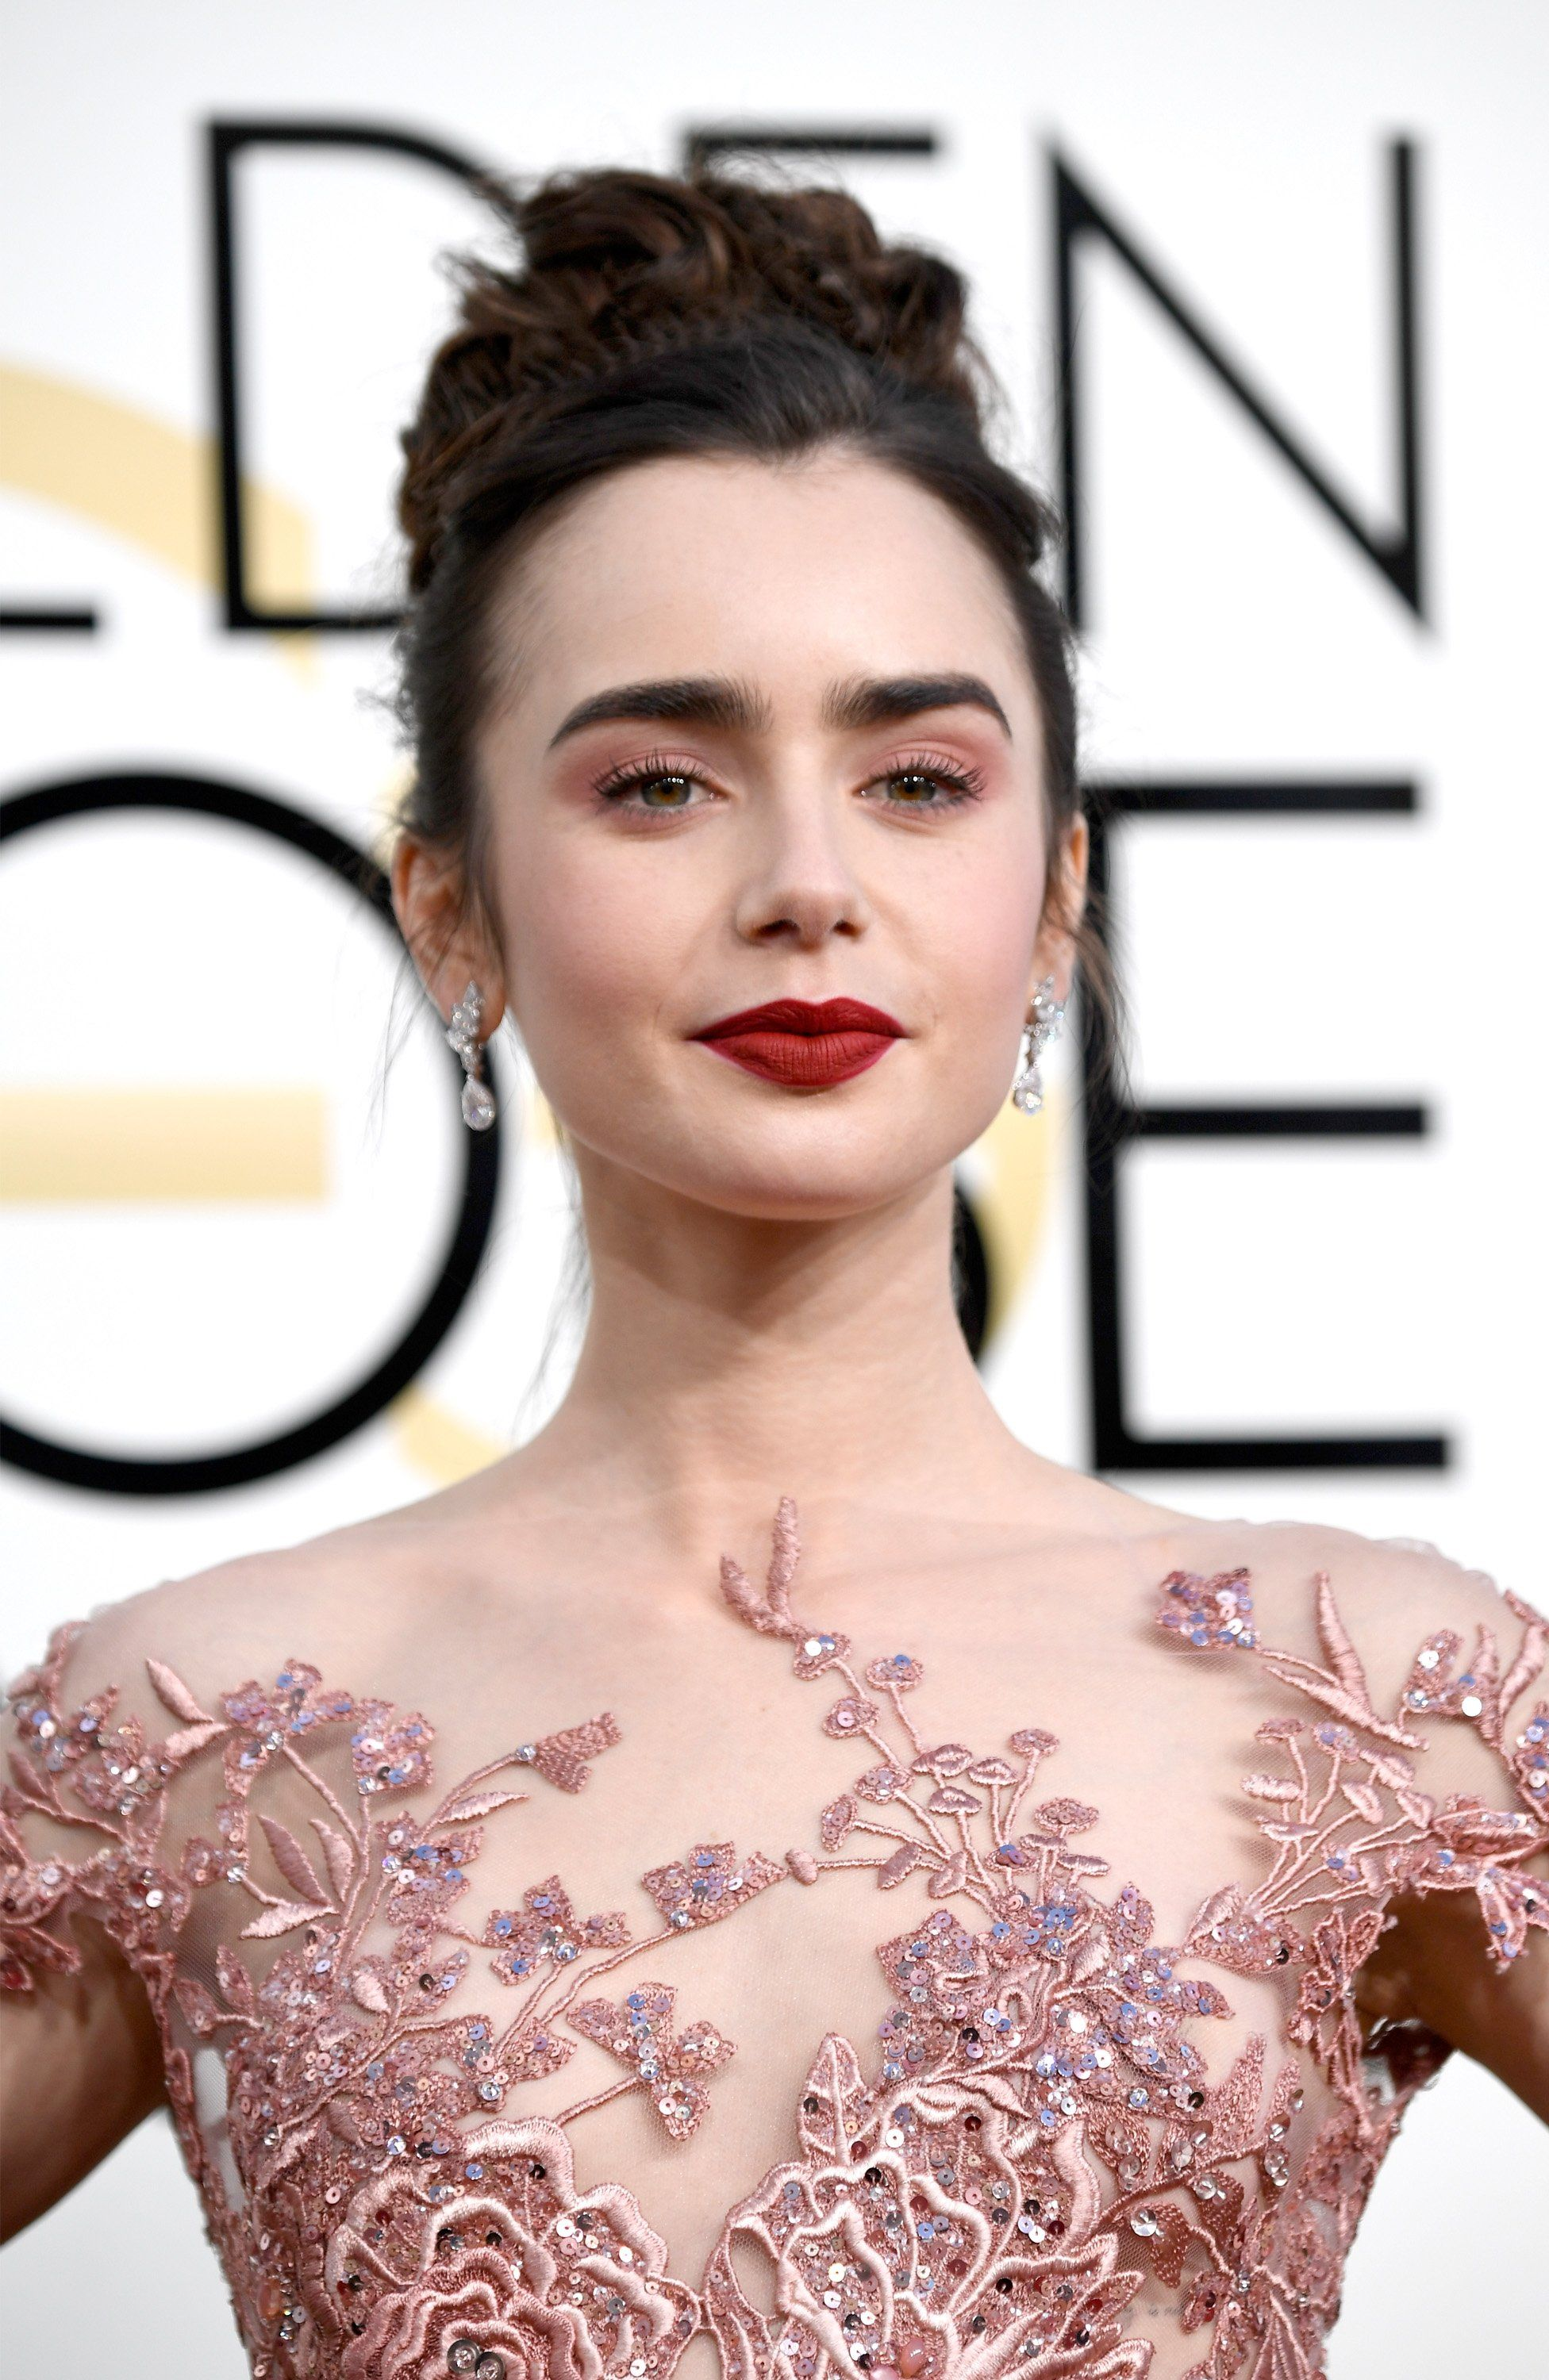 Lily Collins #lilycollins